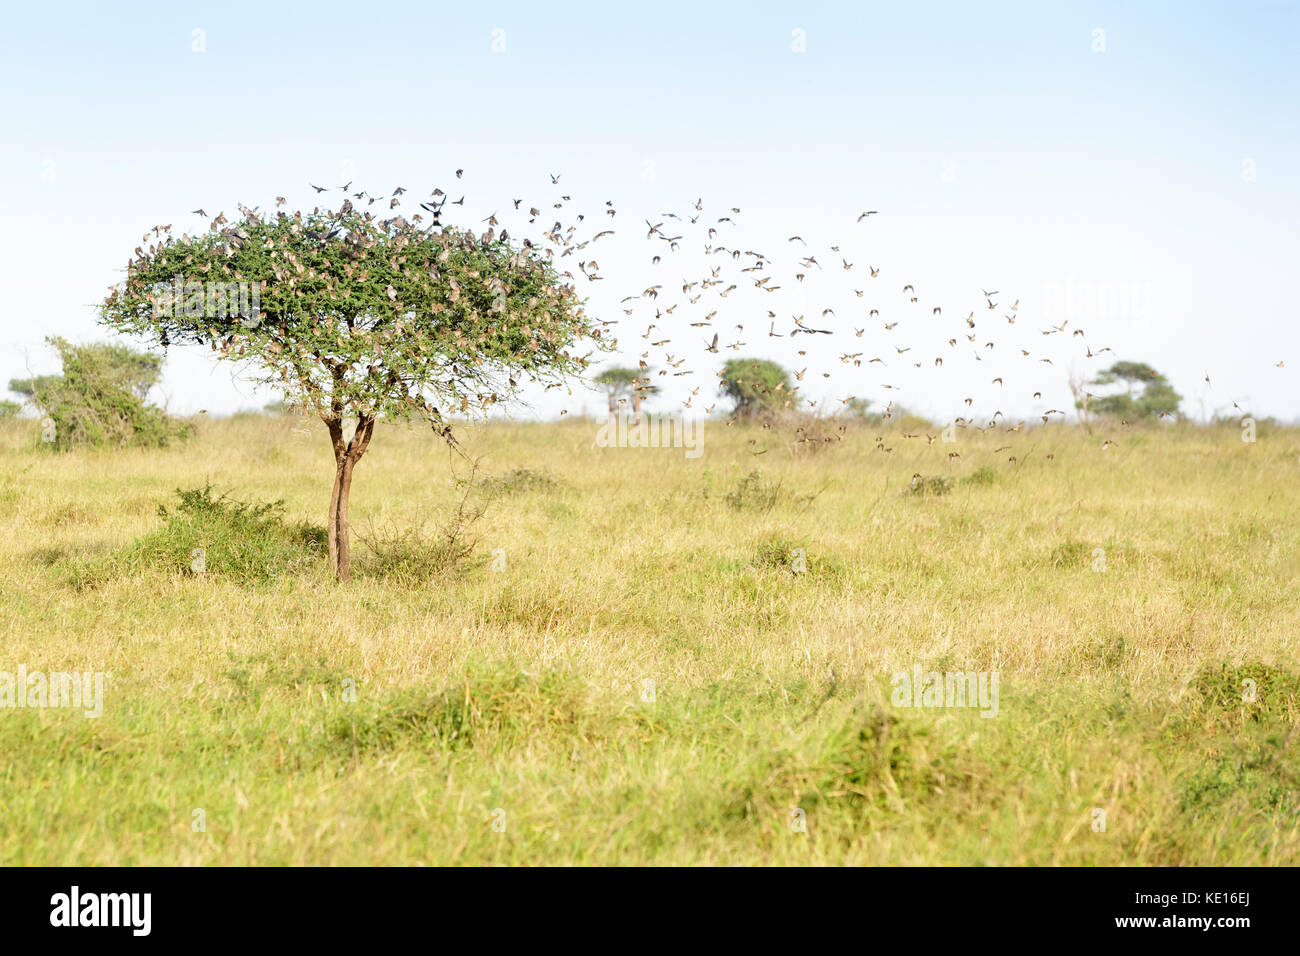 Red-billed quelea (Quelea quelea) flocking around tree, Kruger national park, South Africa. - Stock Image